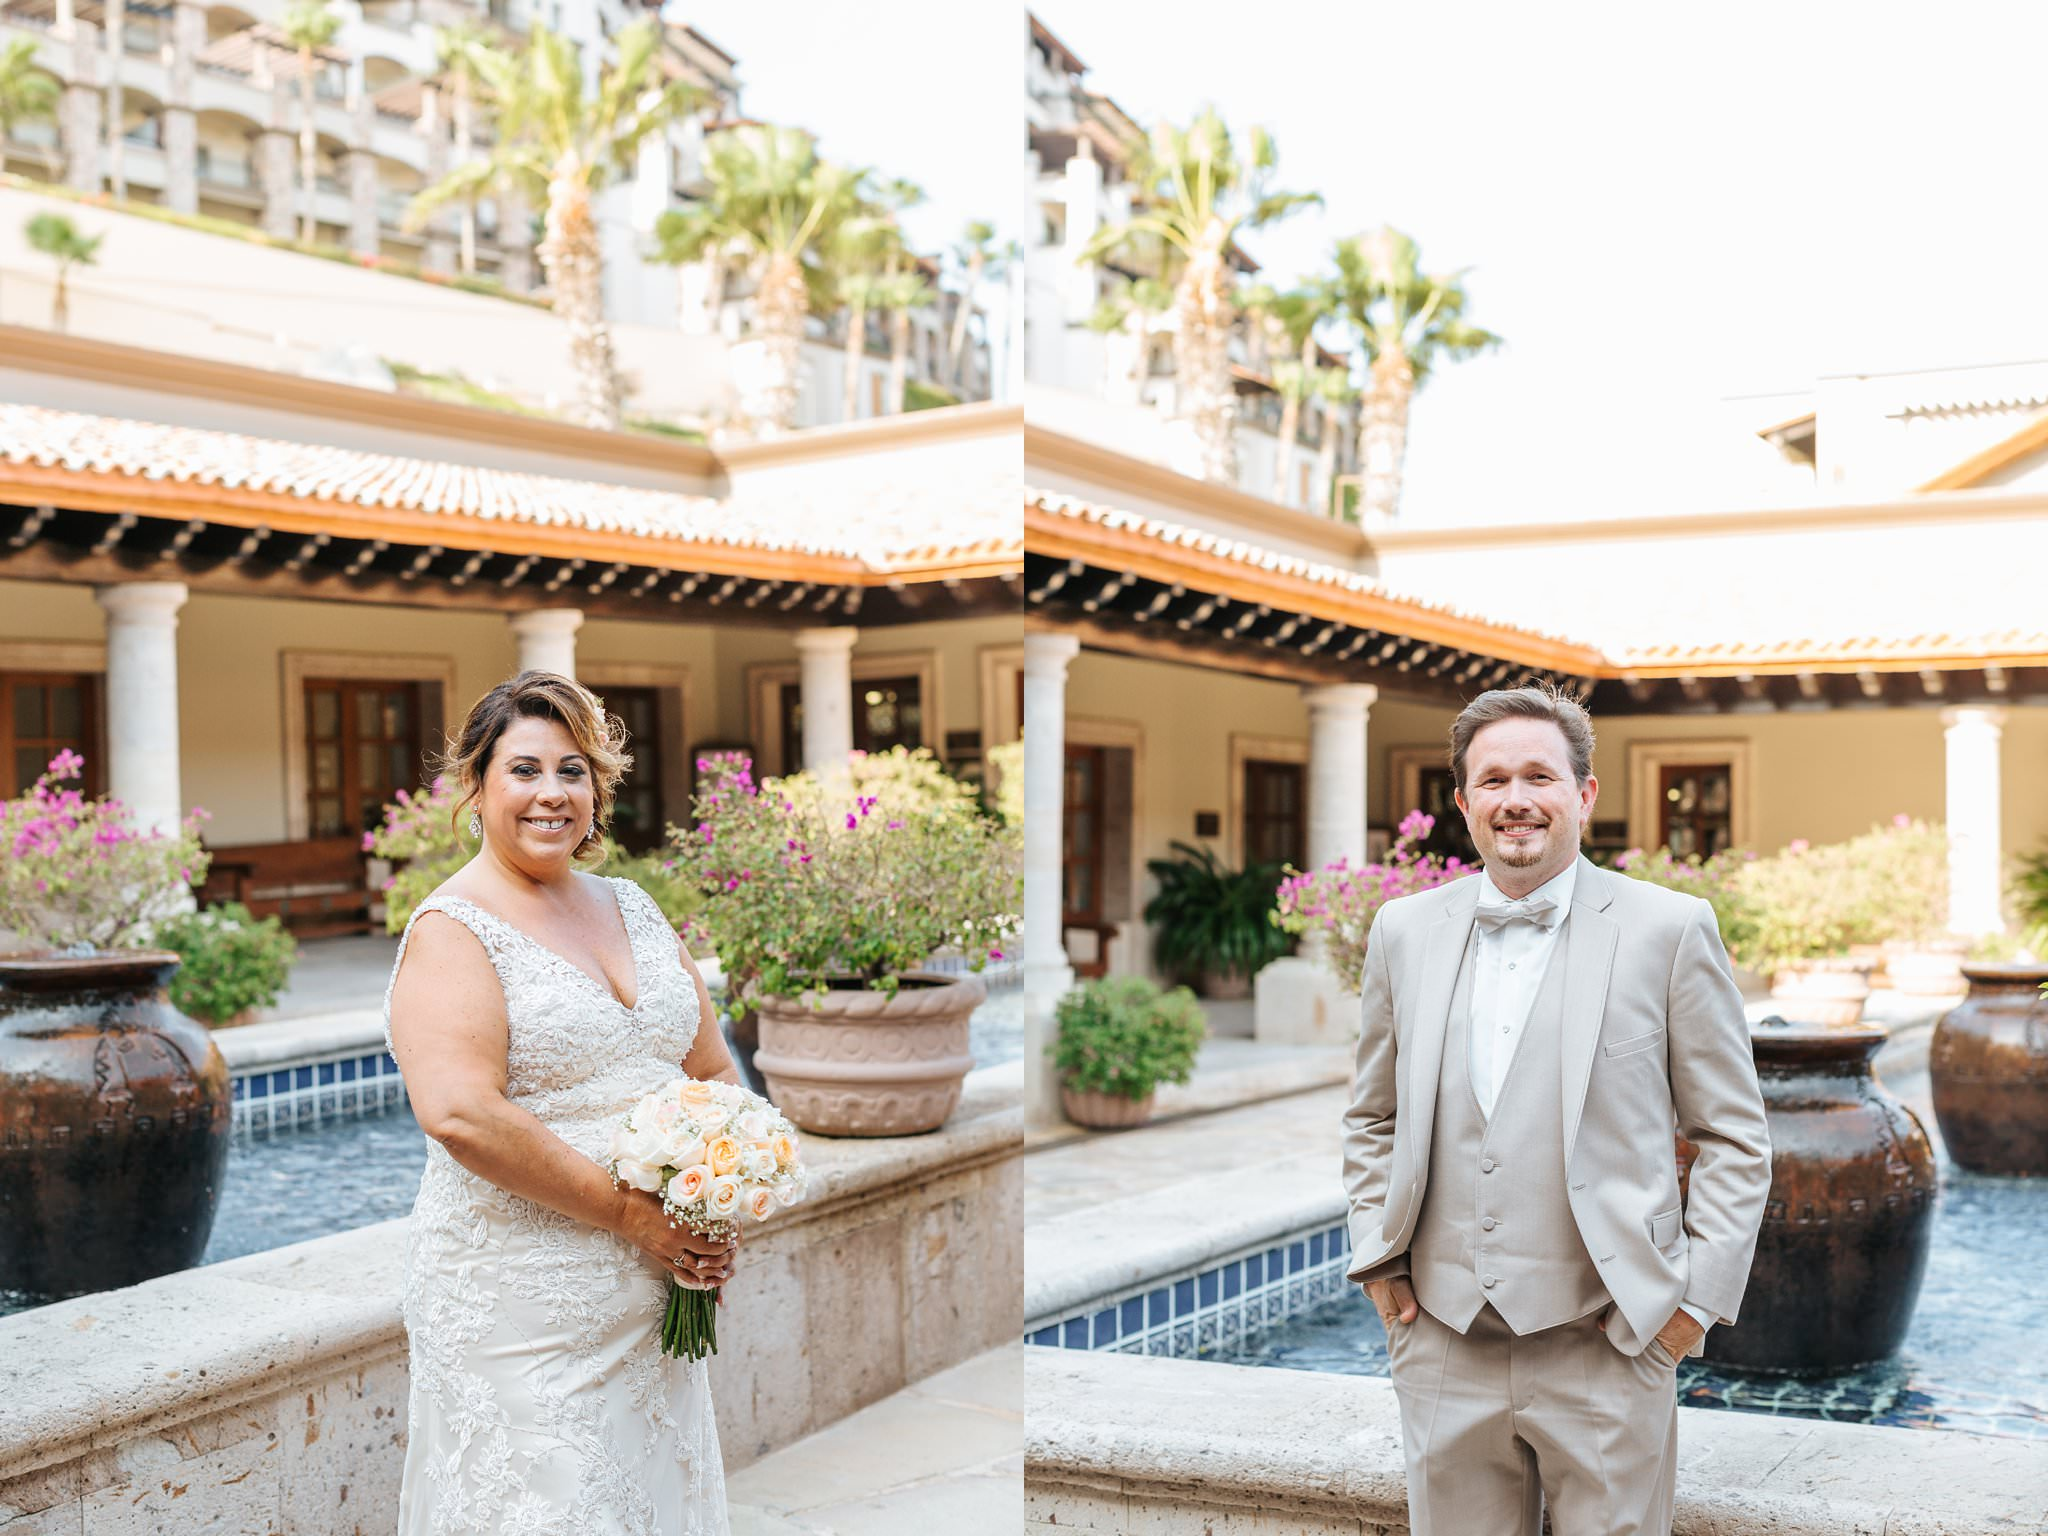 Cabo Destination Wedding in Mexico - https://brittneyhannonphotography.com